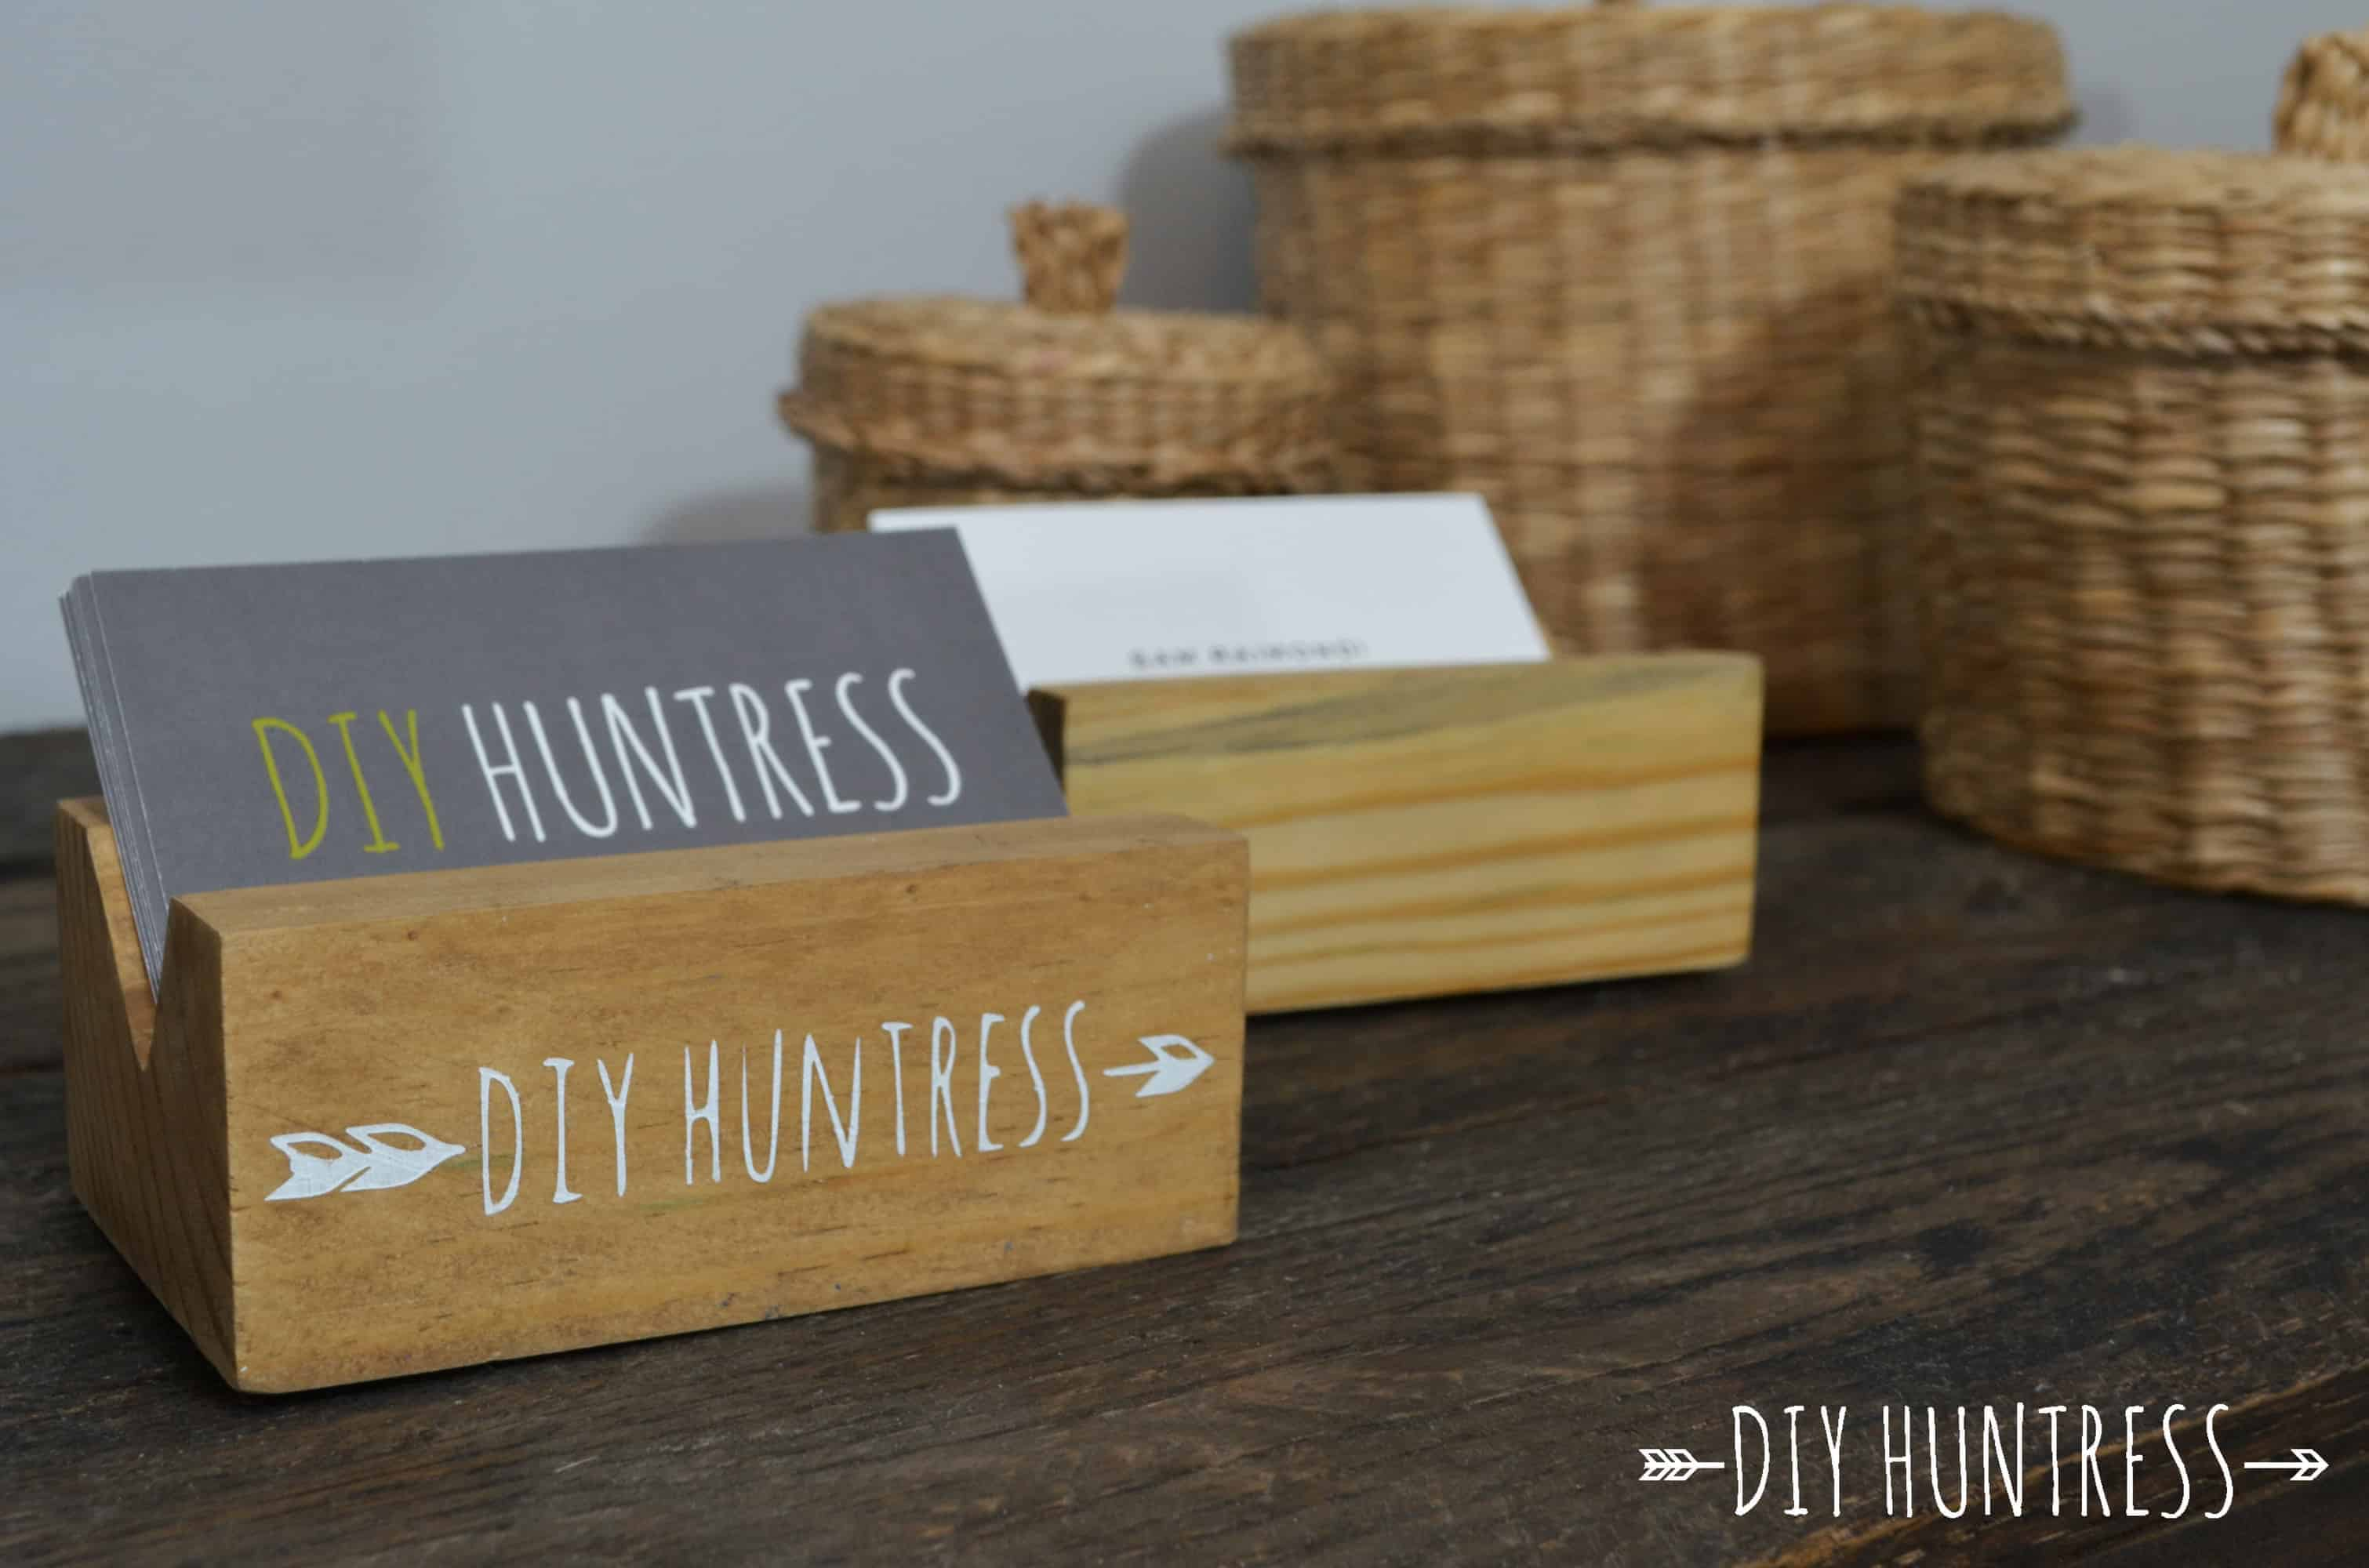 diy wooden business card holder february 10 2016 1 comment diyhuntressbusinesscardholder 13 - Diy Business Card Holder